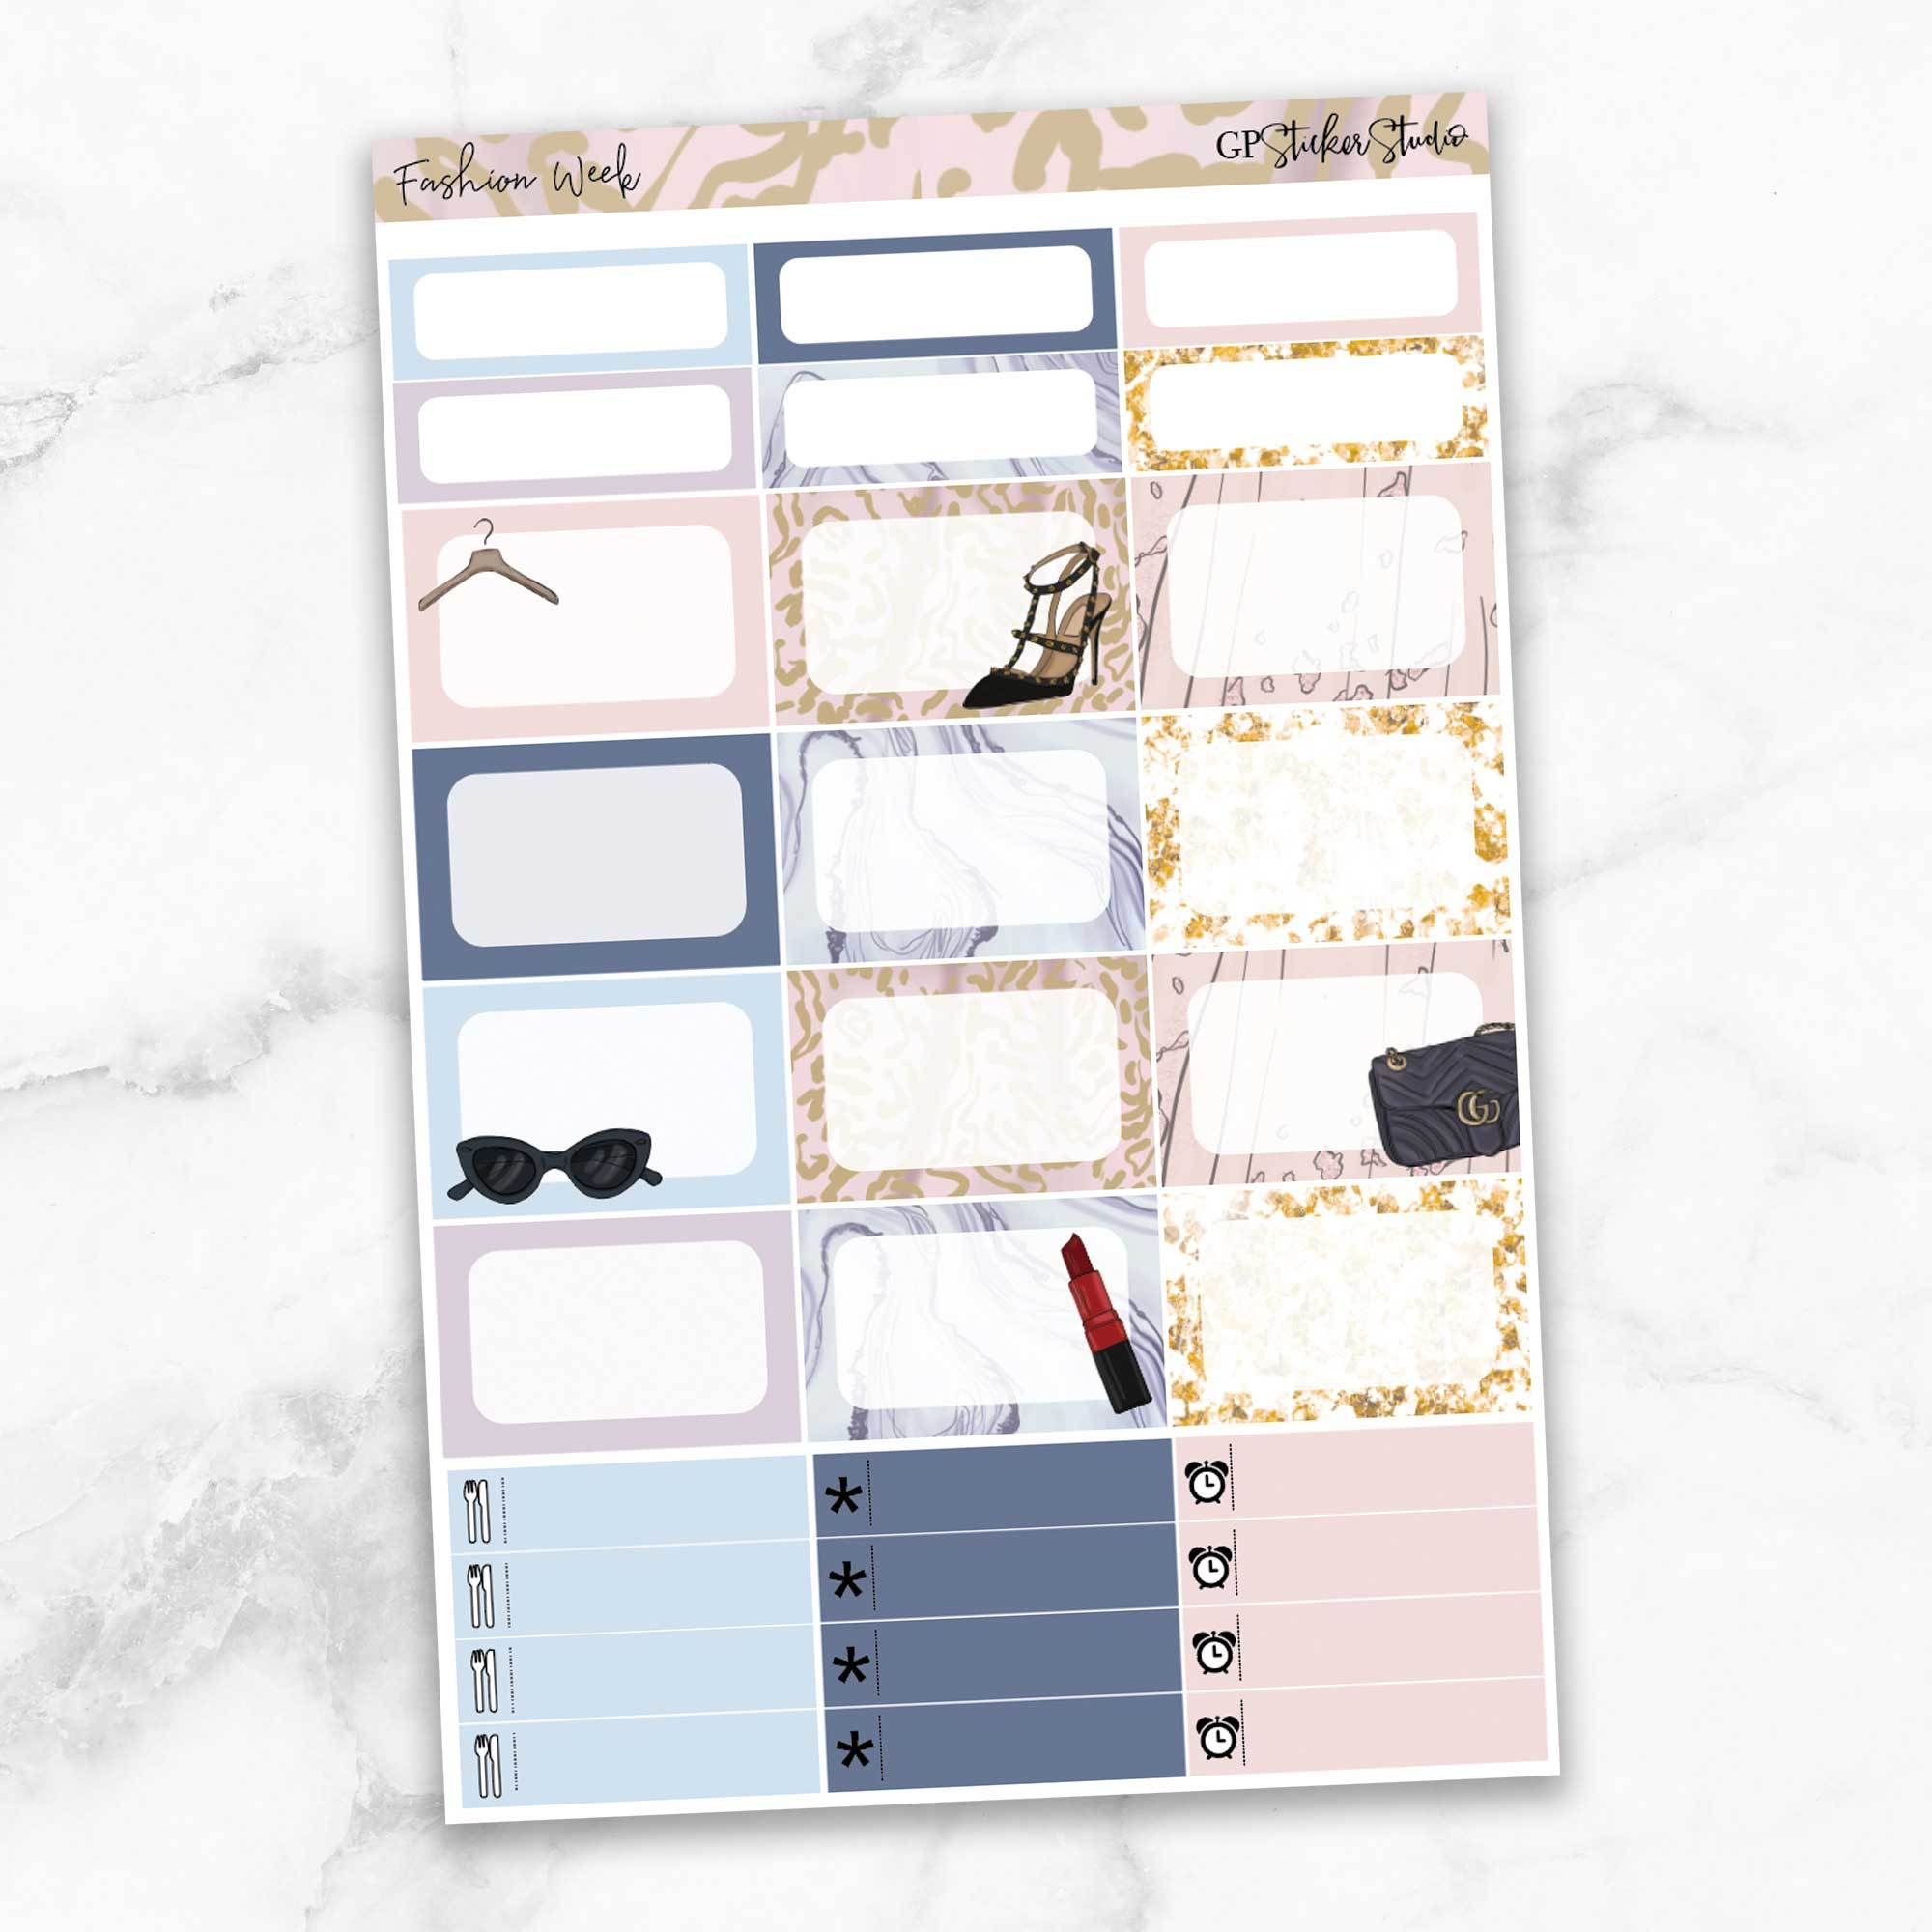 FASHION WEEK Half Boxes Planner Stickers-The GP Studio